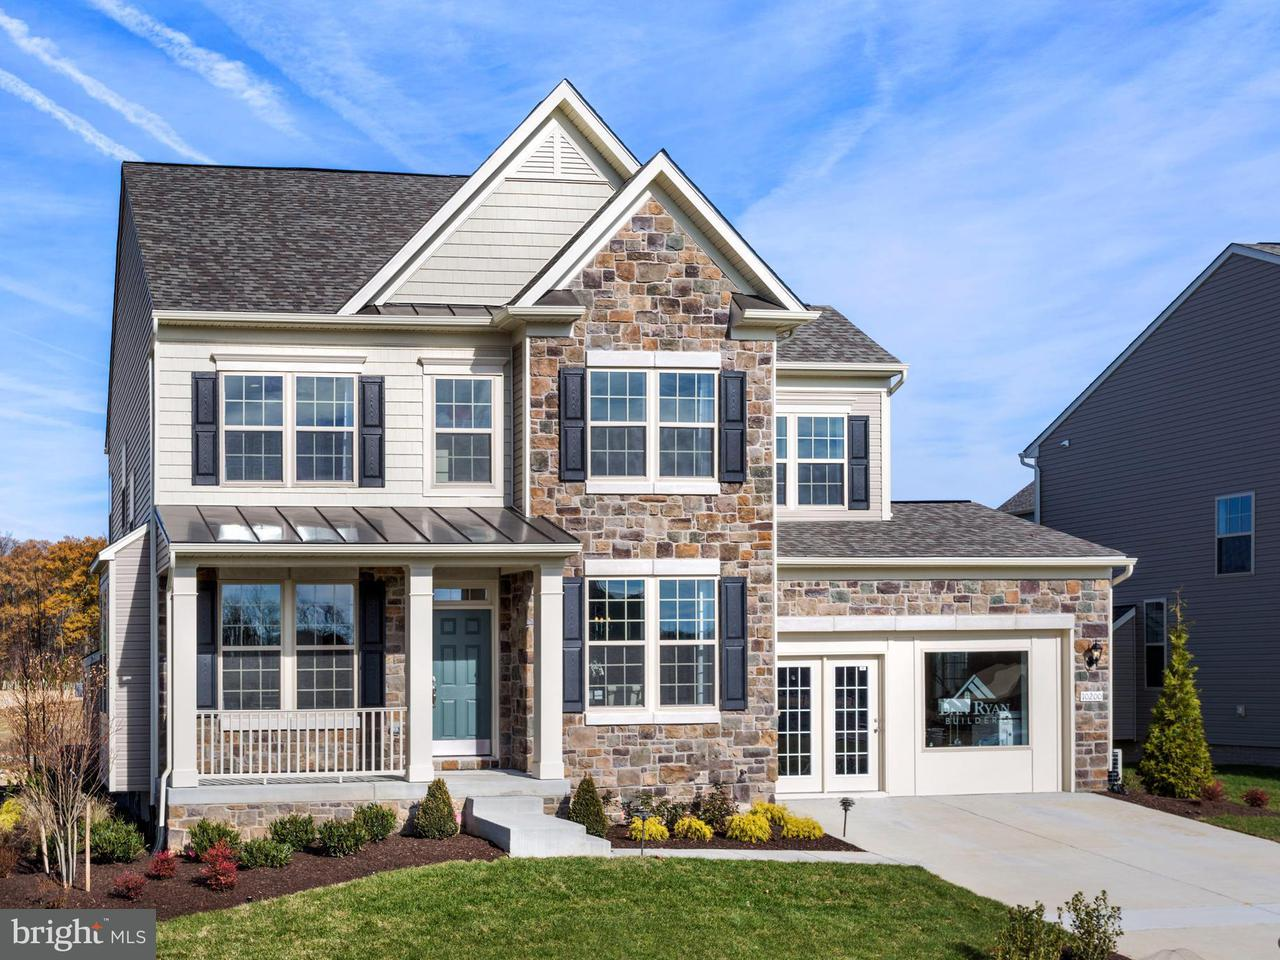 Single Family Home for Sale at 10200 GALAXY VIEW Lane 10200 GALAXY VIEW Lane Lanham, Maryland 20706 United States